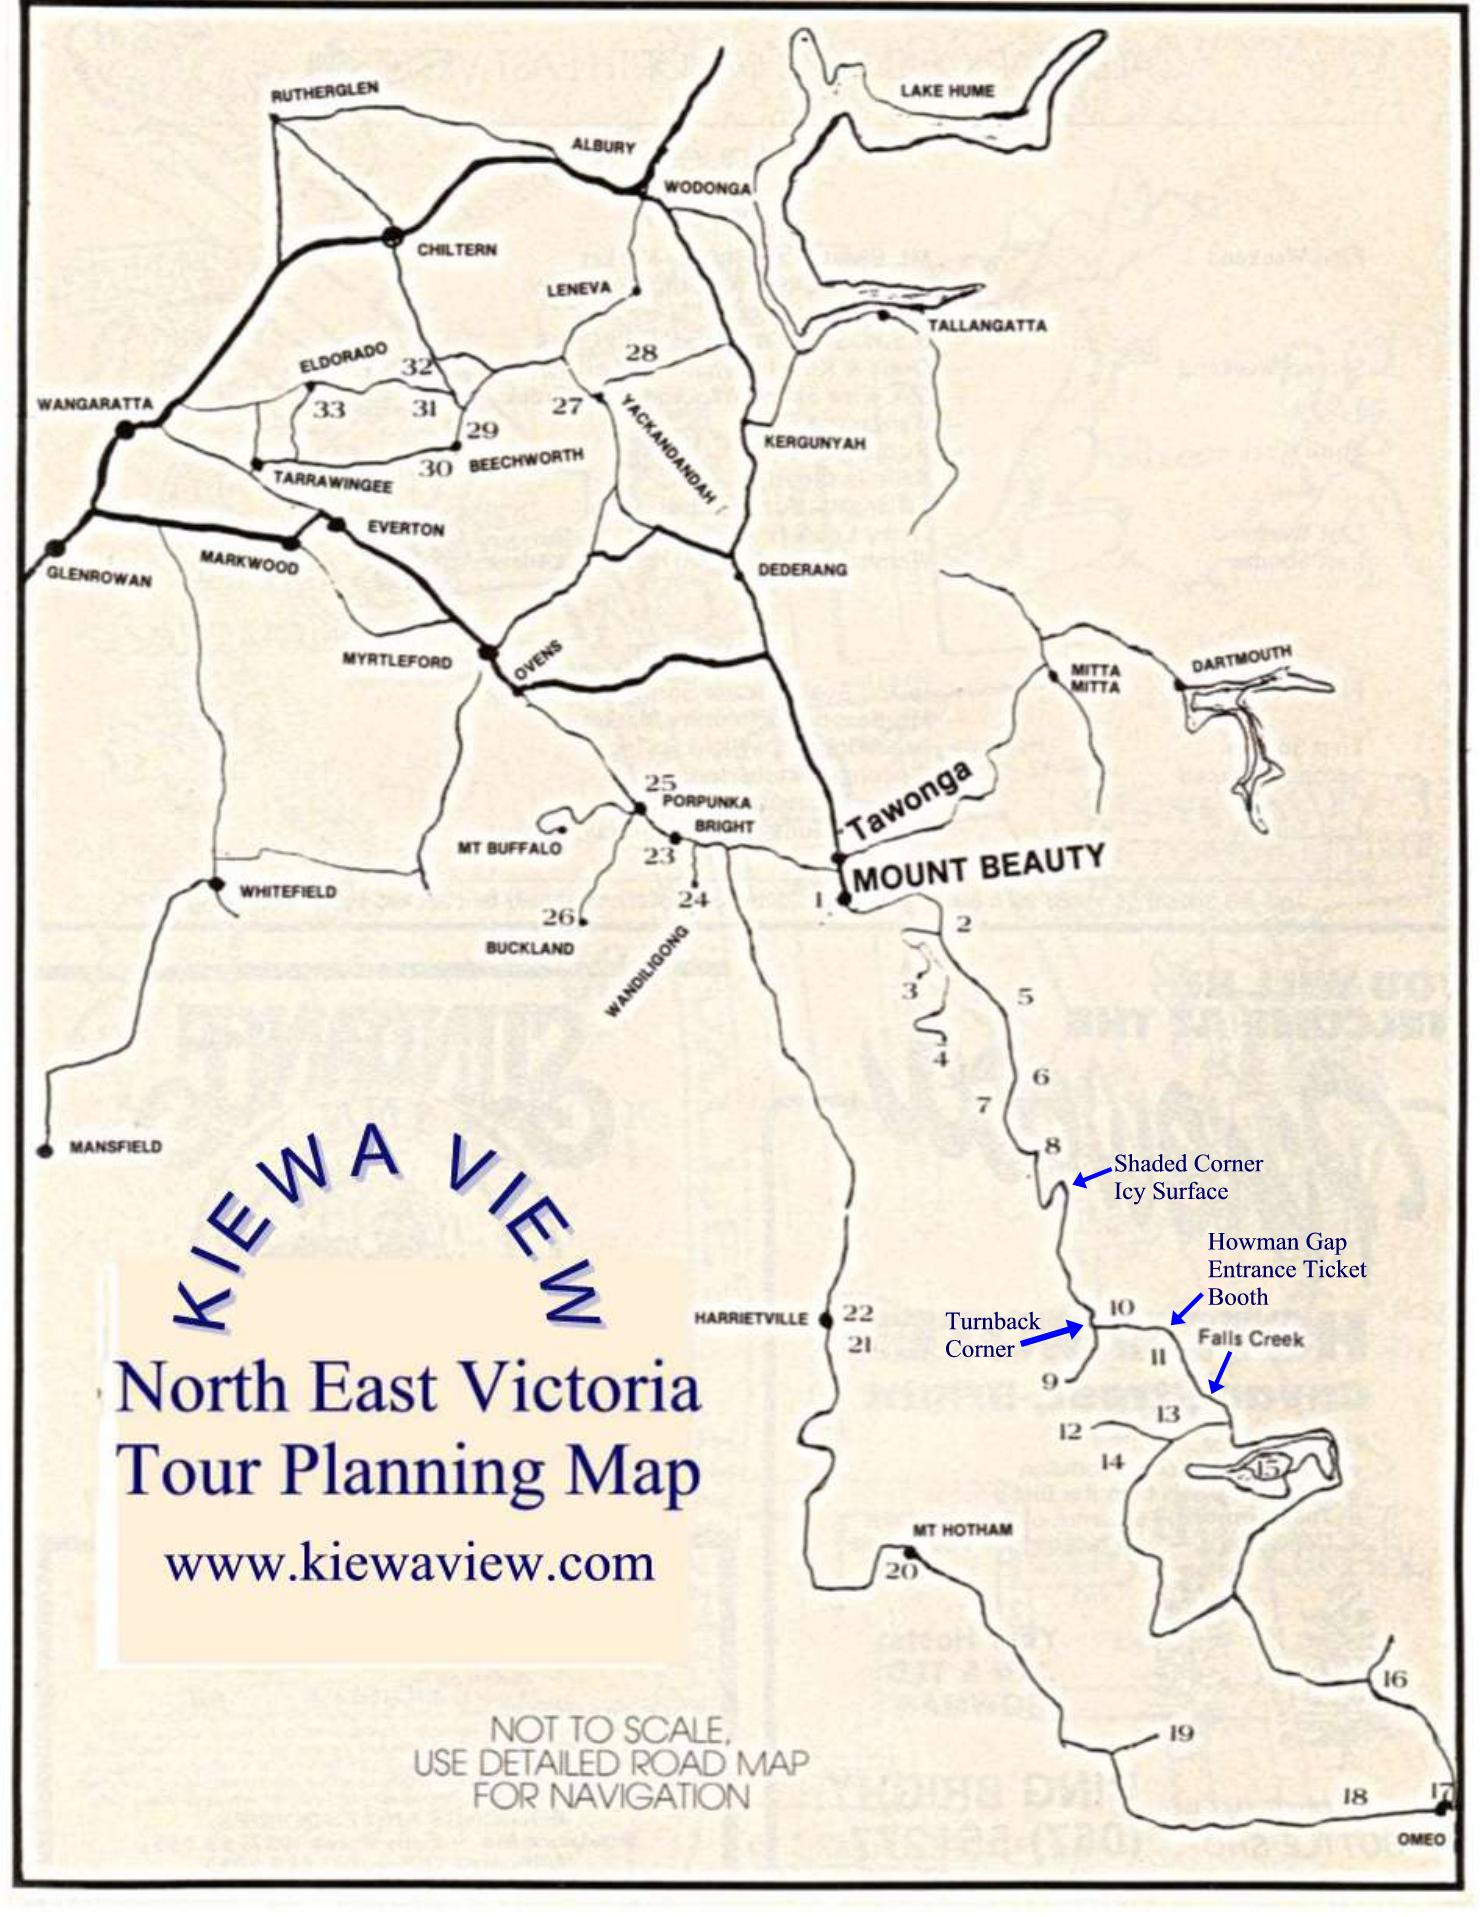 North East Victoria touring map including road to Falls Creek